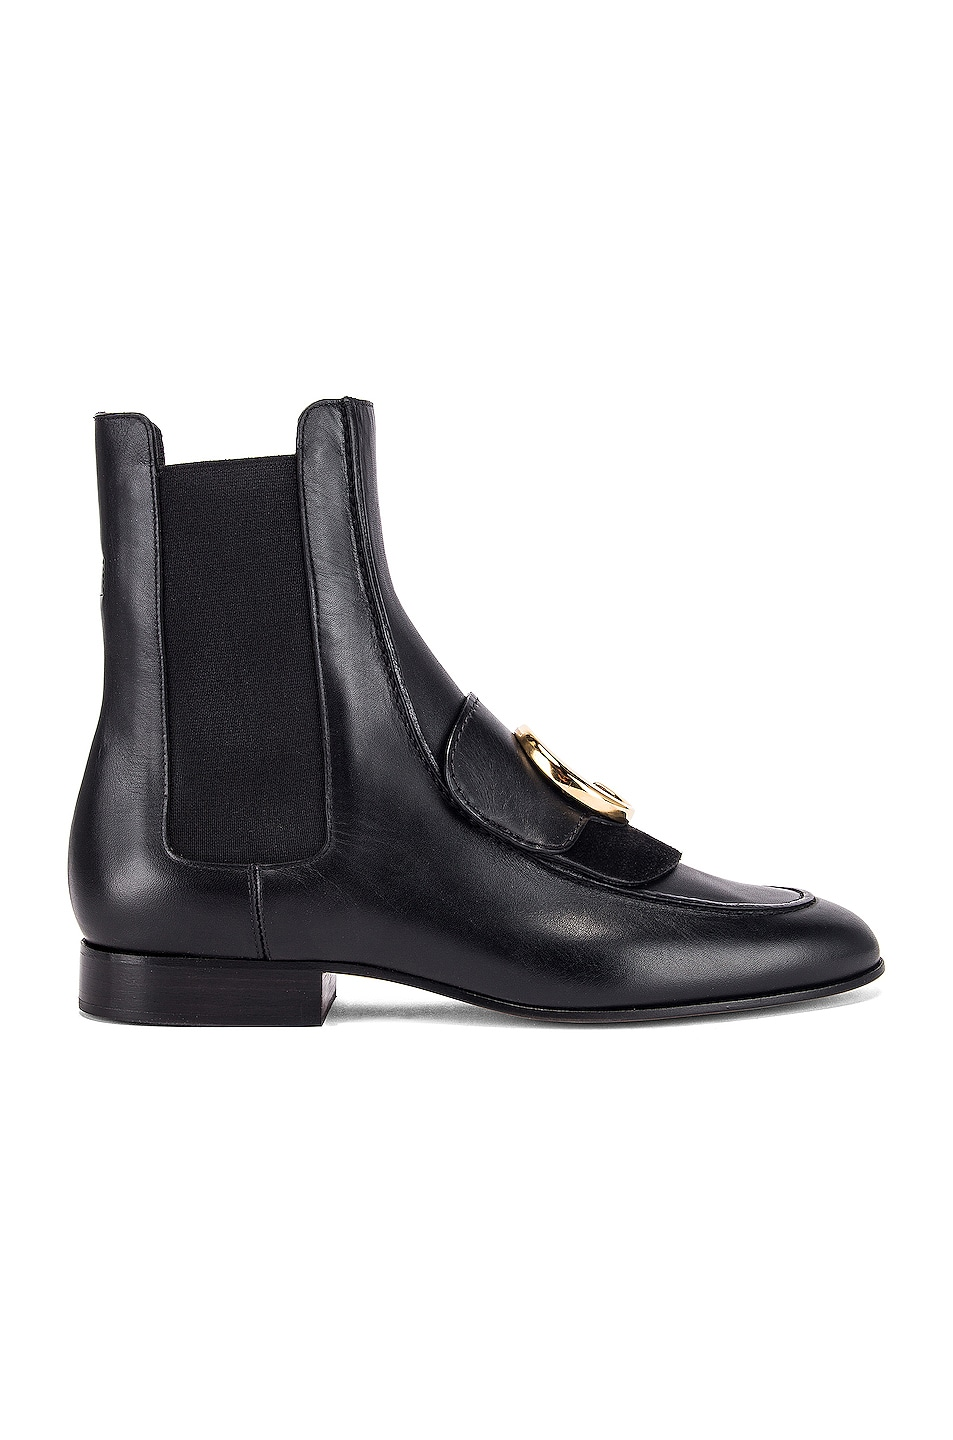 Image 2 of Chloe C Ankle Boots in Black